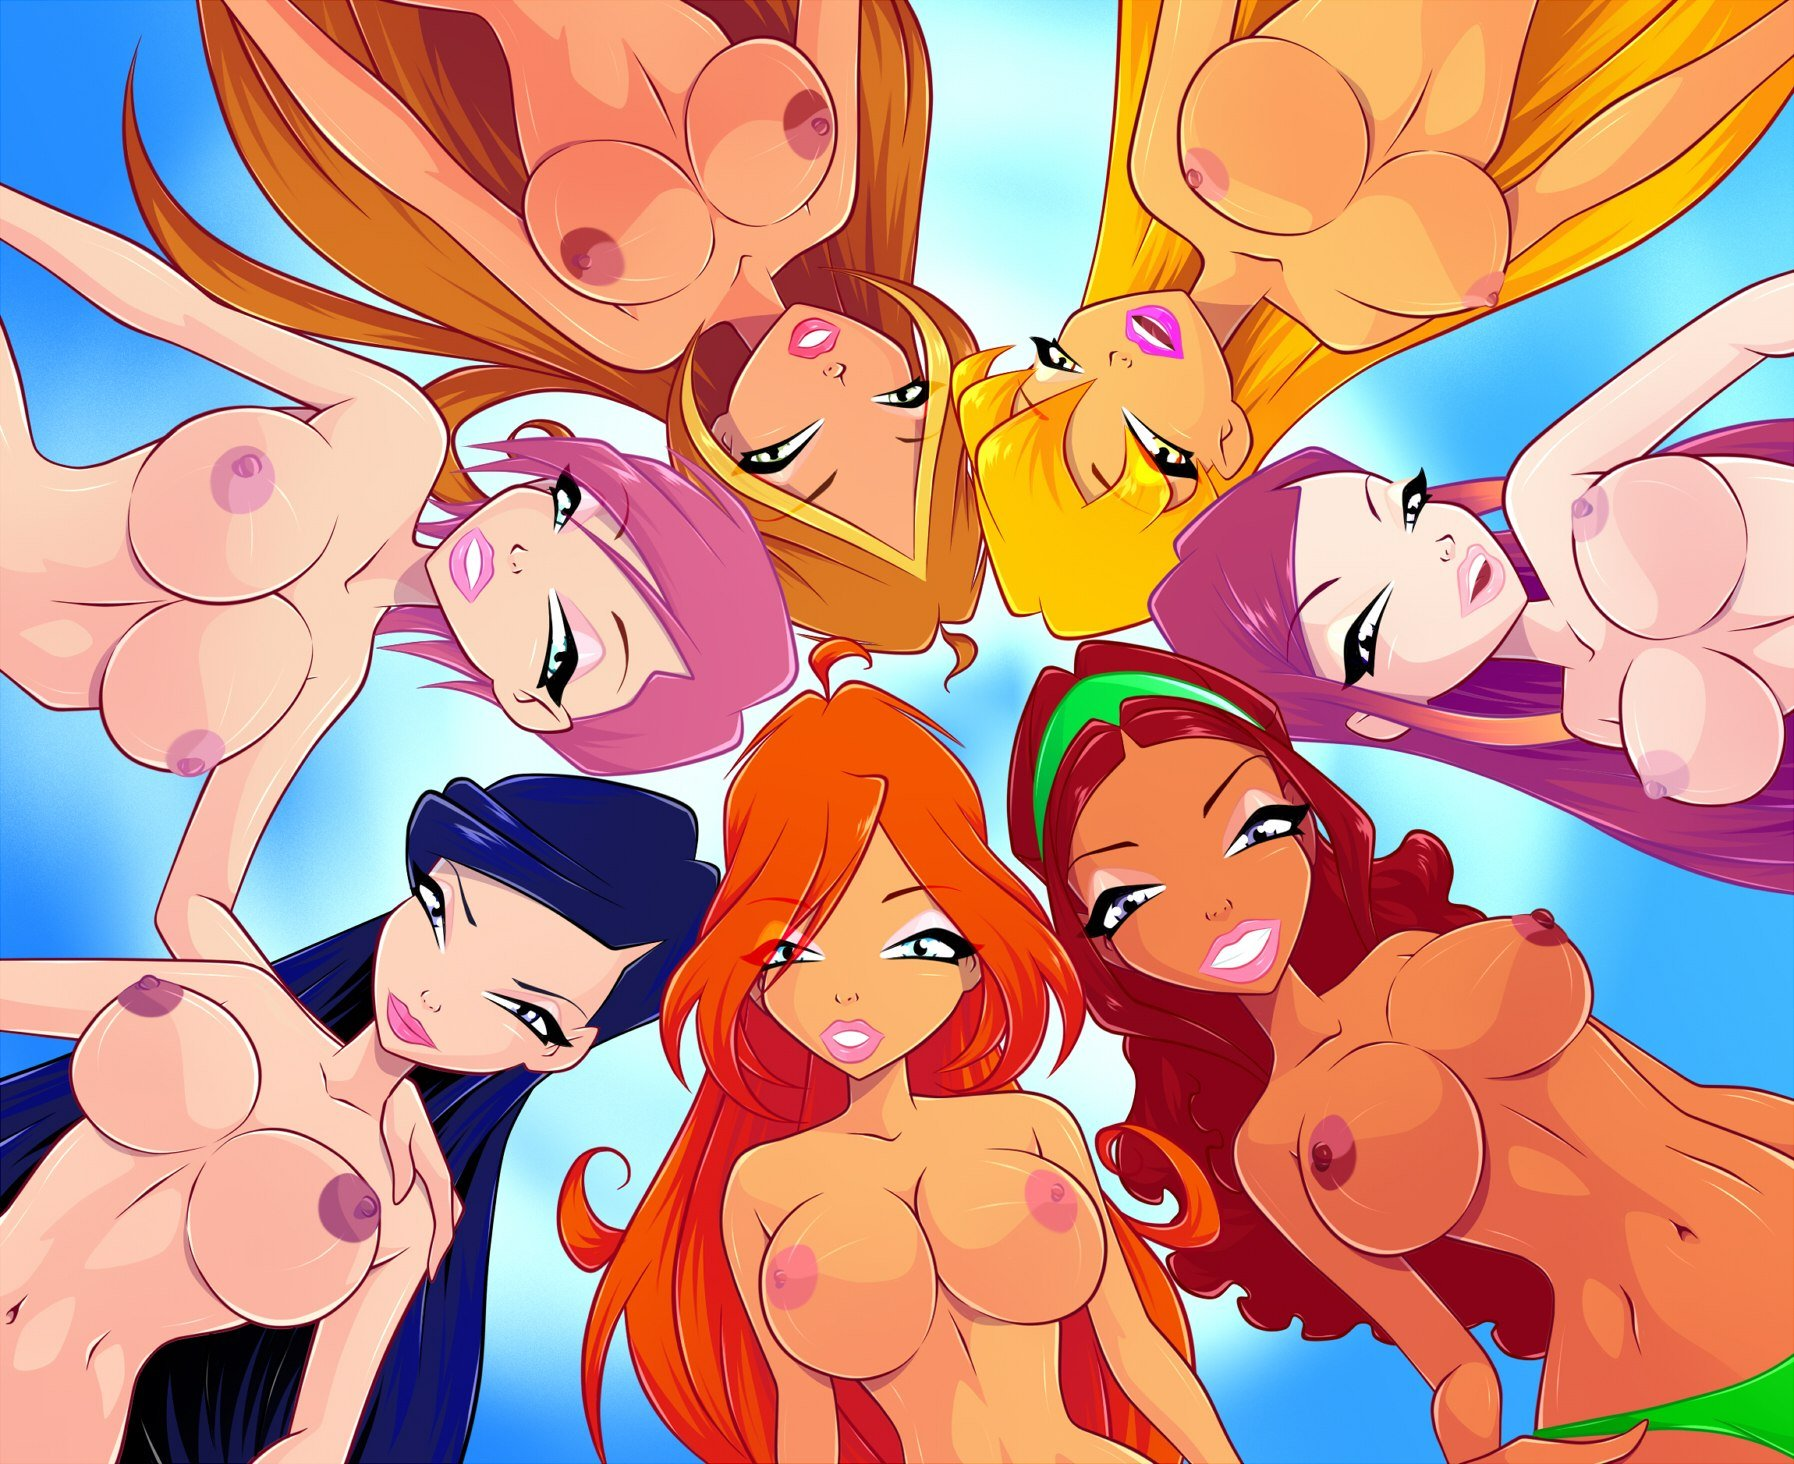 winx club boobs